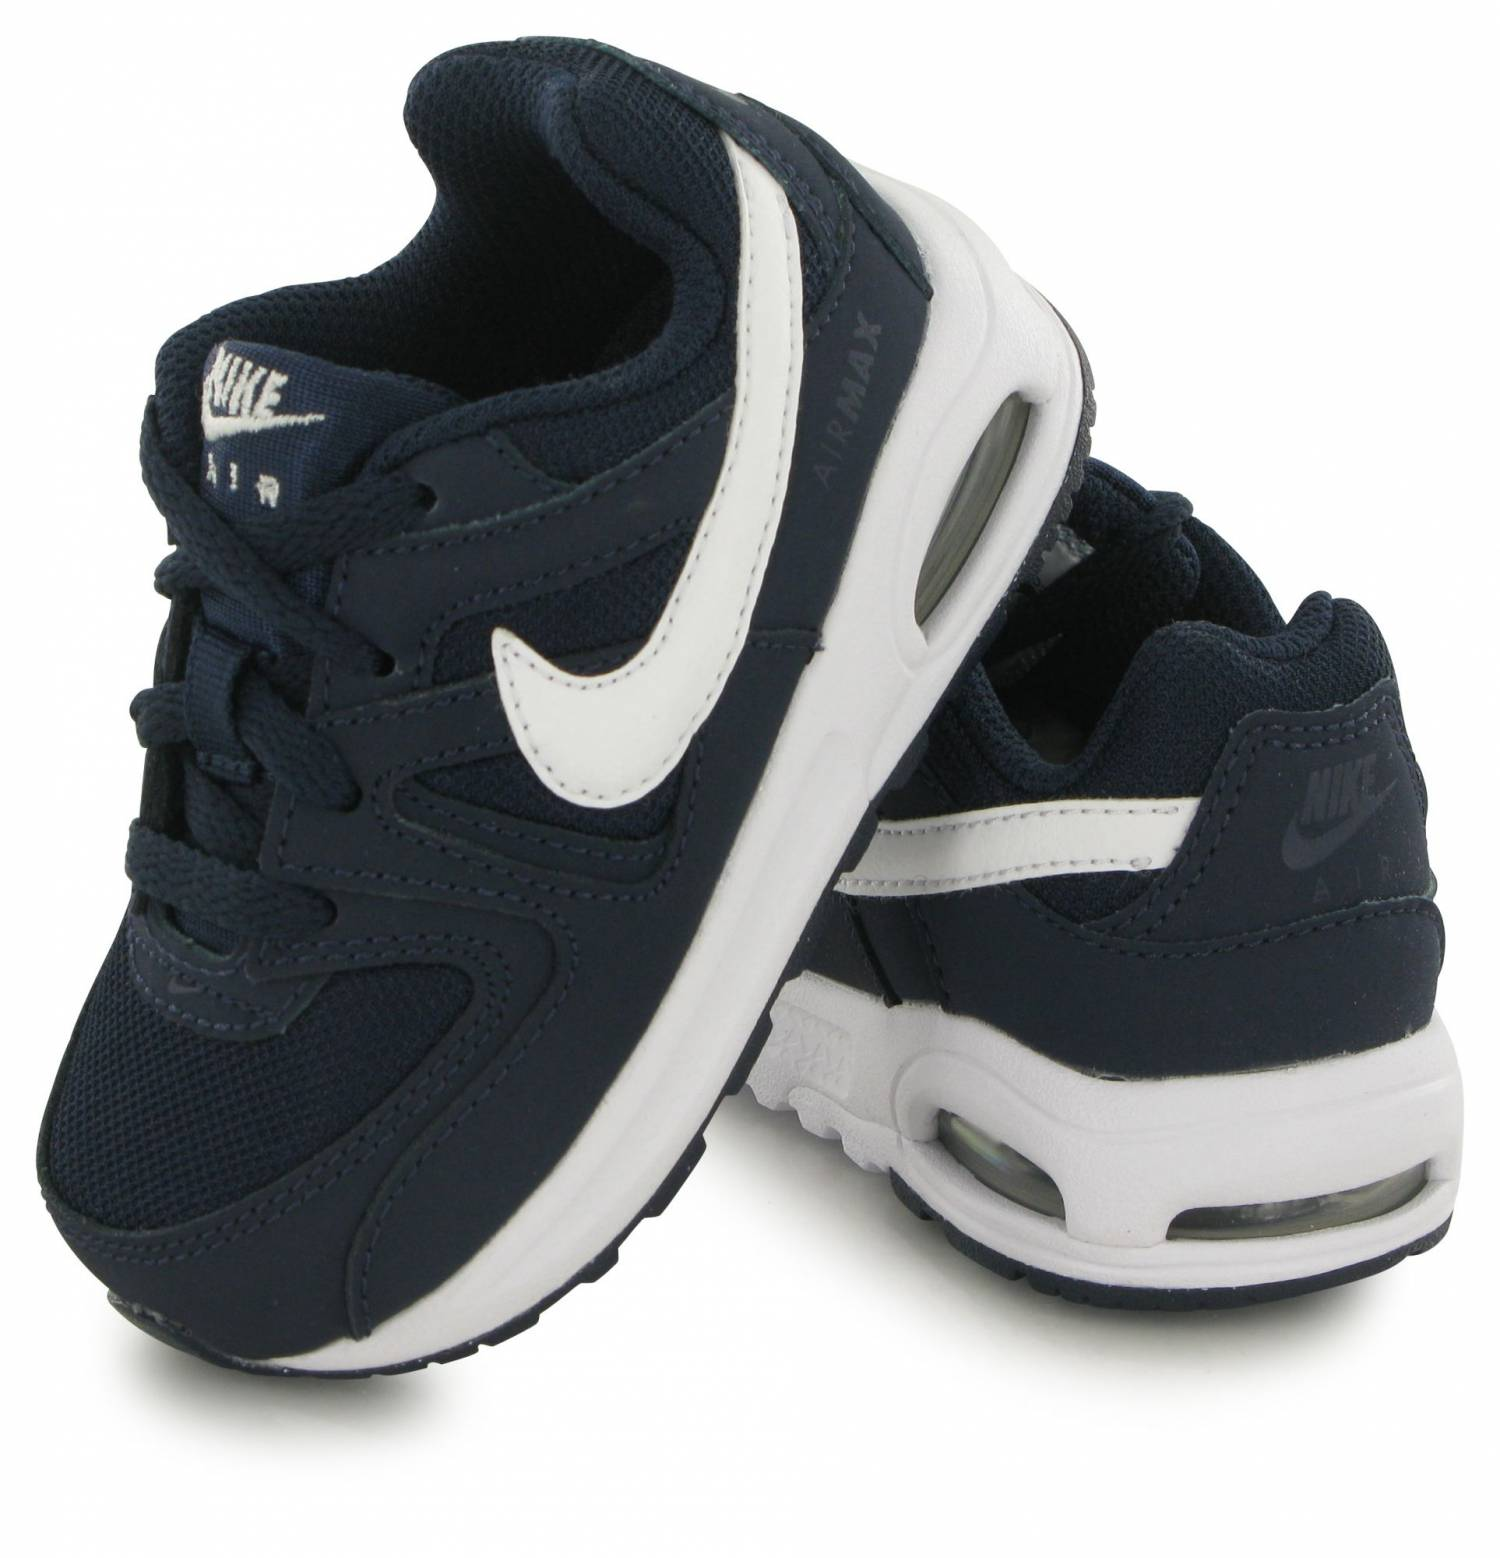 exquisite design where can i buy finest selection Nike Air Max Command Flex Bb Bebe Marine